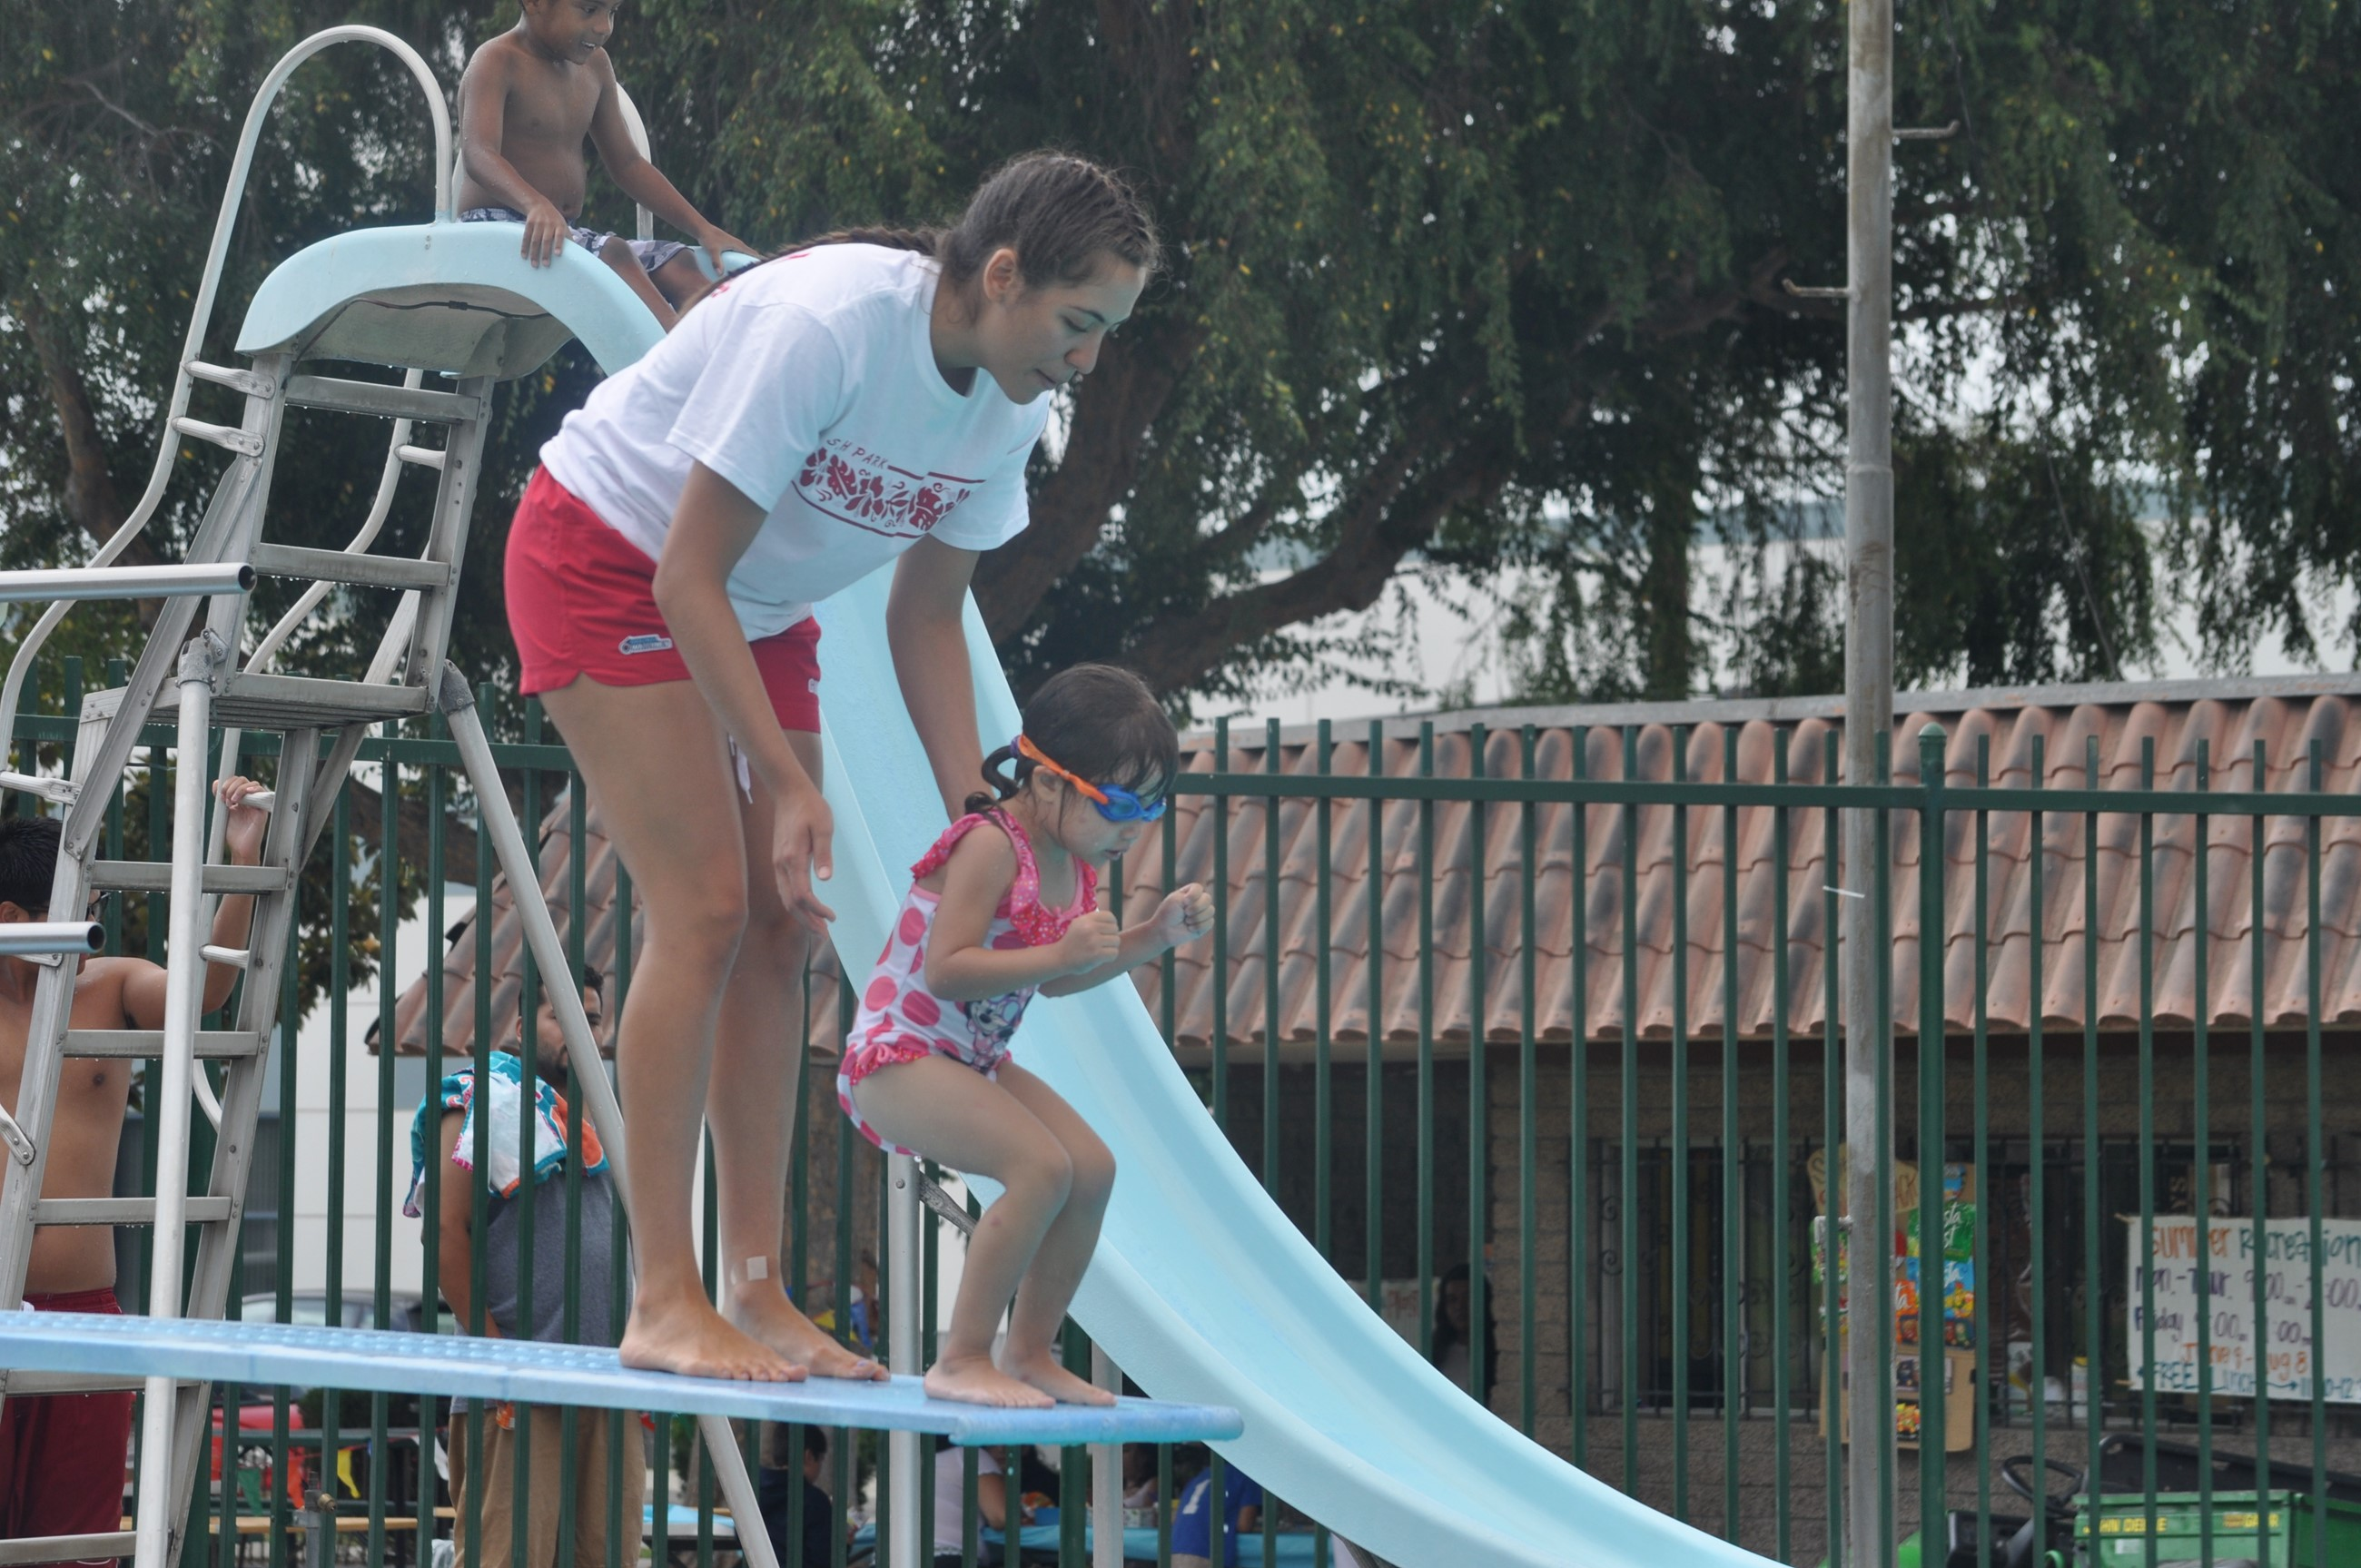 lifeguard swim lessons diving board san gabriel parks and recreation aquatics instructor water safety